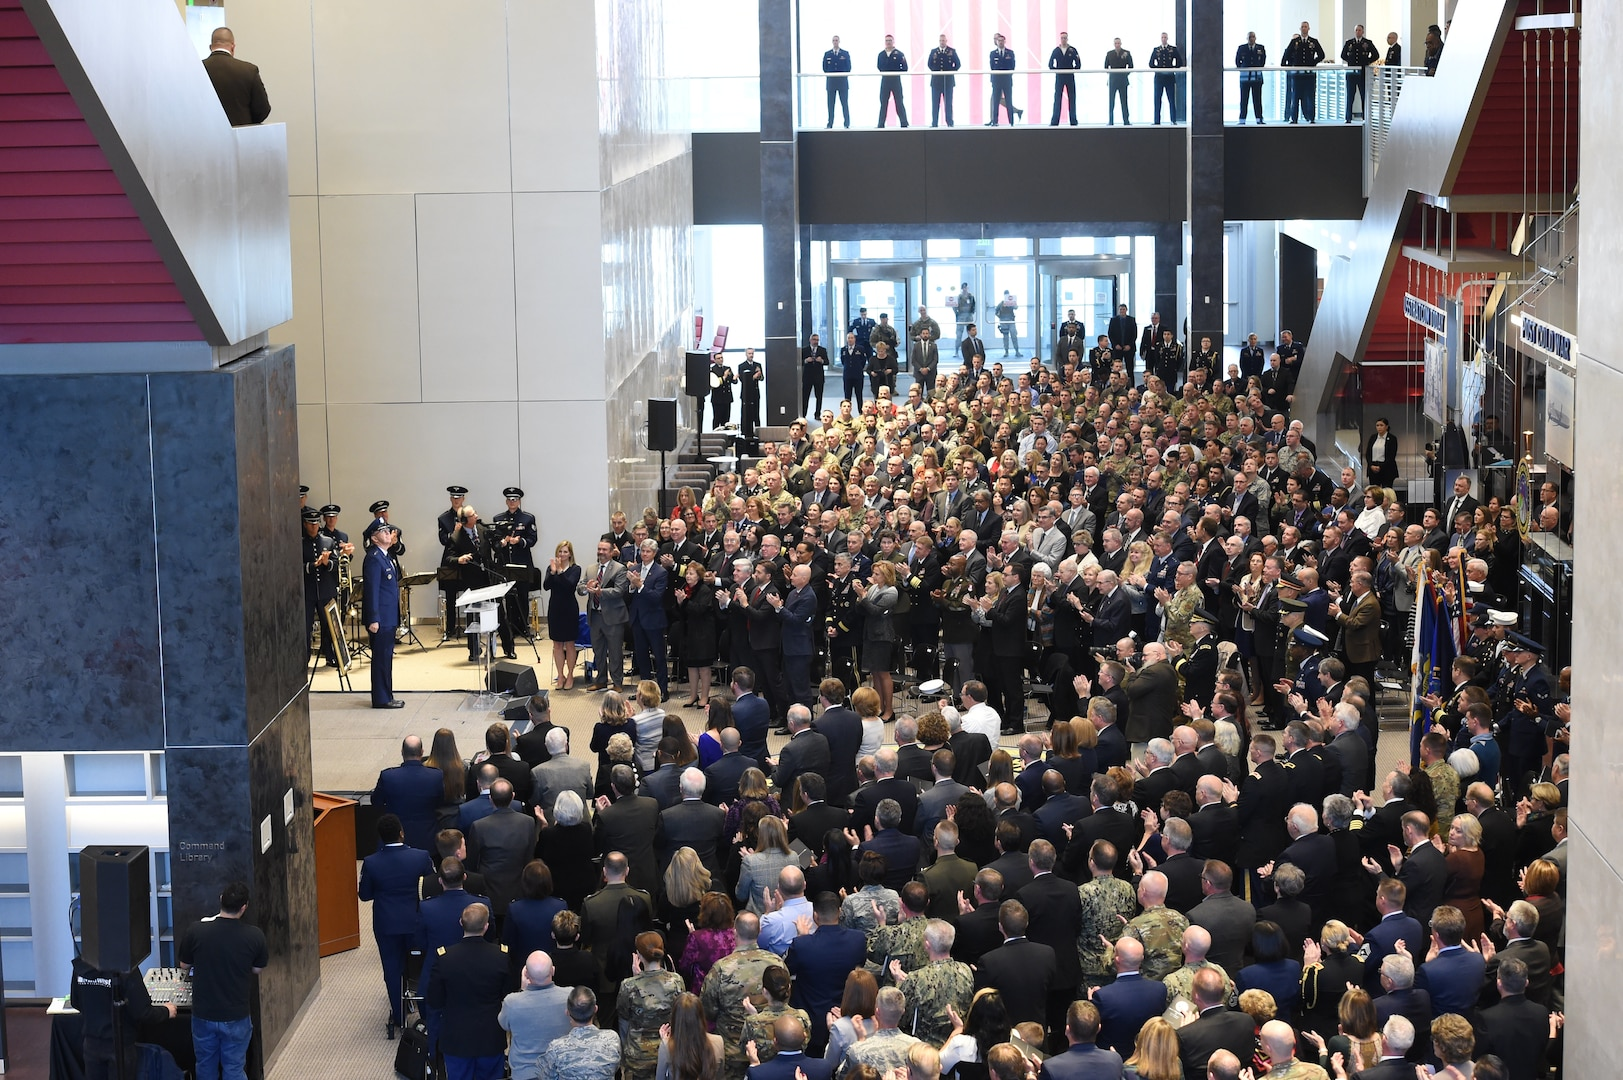 The audience gives U.S. Air Force Gen. John Hyten, outgoing commander of U.S. Strategic Command (USSTRATCOM), as standing ovation following his remarks during USSTRATCOM's change of command ceremony at Offutt Air Force Base, Neb., Nov. 18, 2019. USSTRATCOM is a global warfighting command and the ultimate guarantor of national and allied security with forces and capability that underpin and enable all other joint force operations. (U.S. Air Force photo by Staff Sgt. Ian Hoachlander)